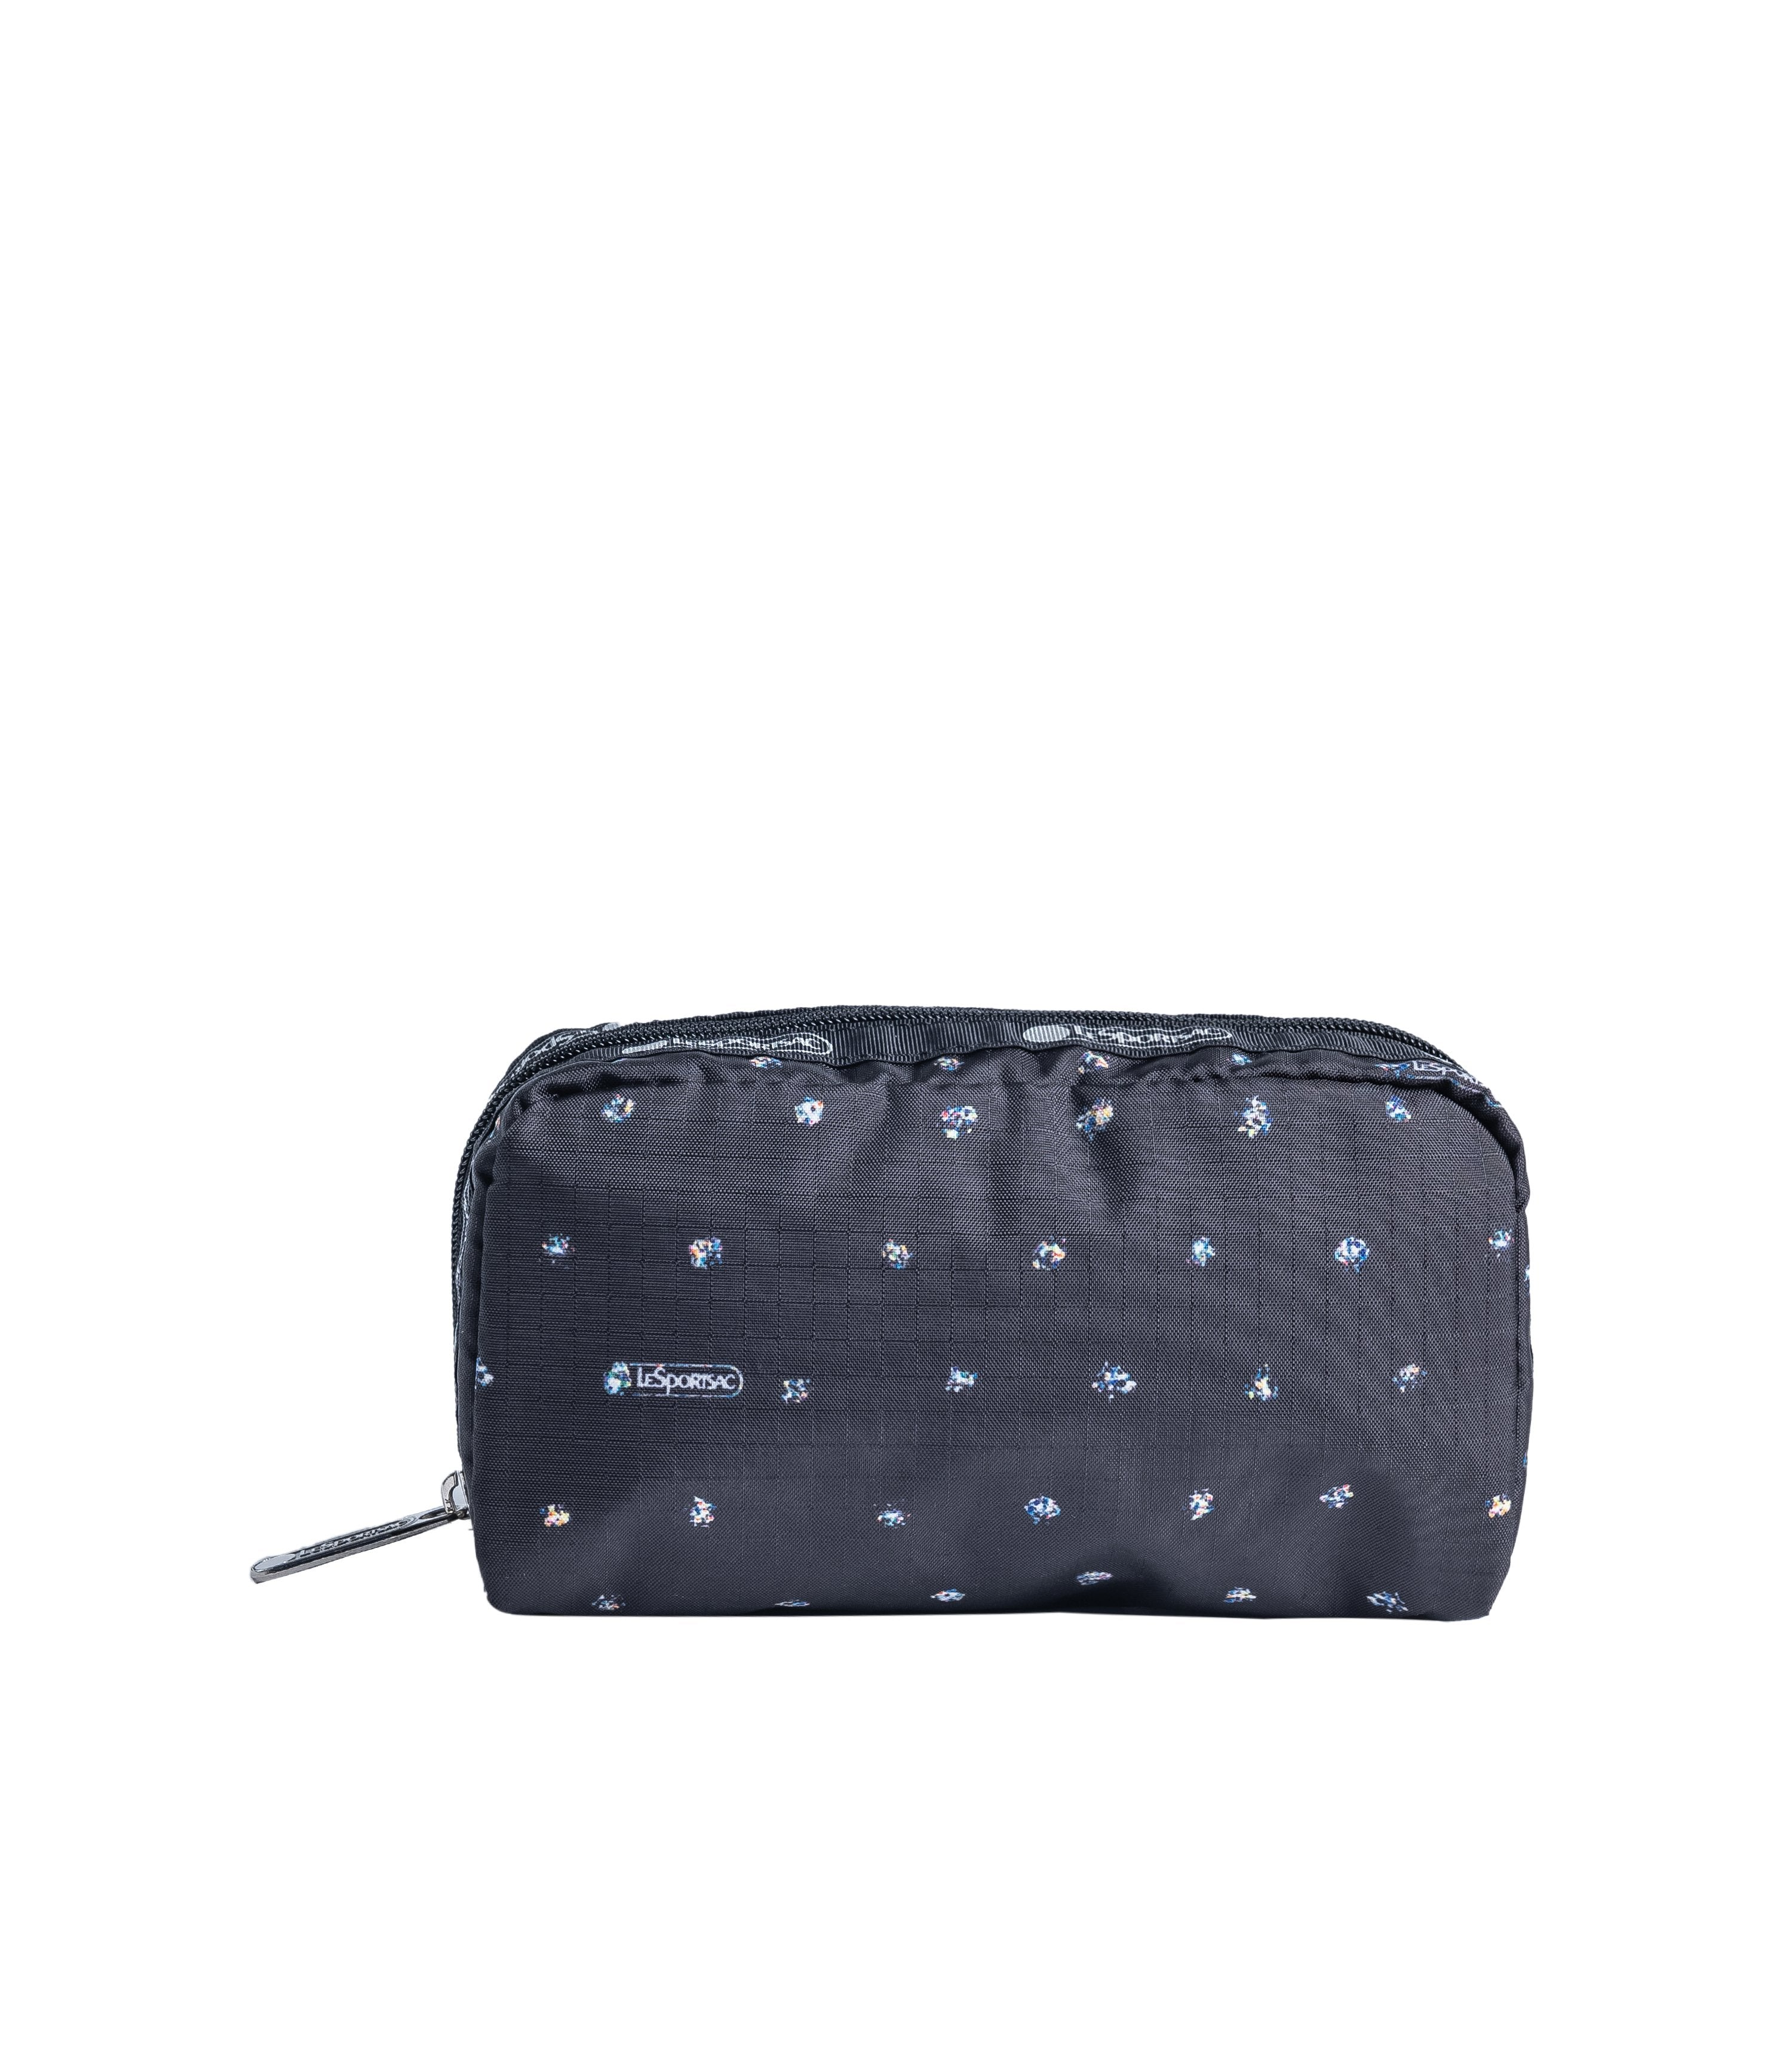 LeSportsac - Accessories - Rectangular Cosmetic - Uptown Sparkle print